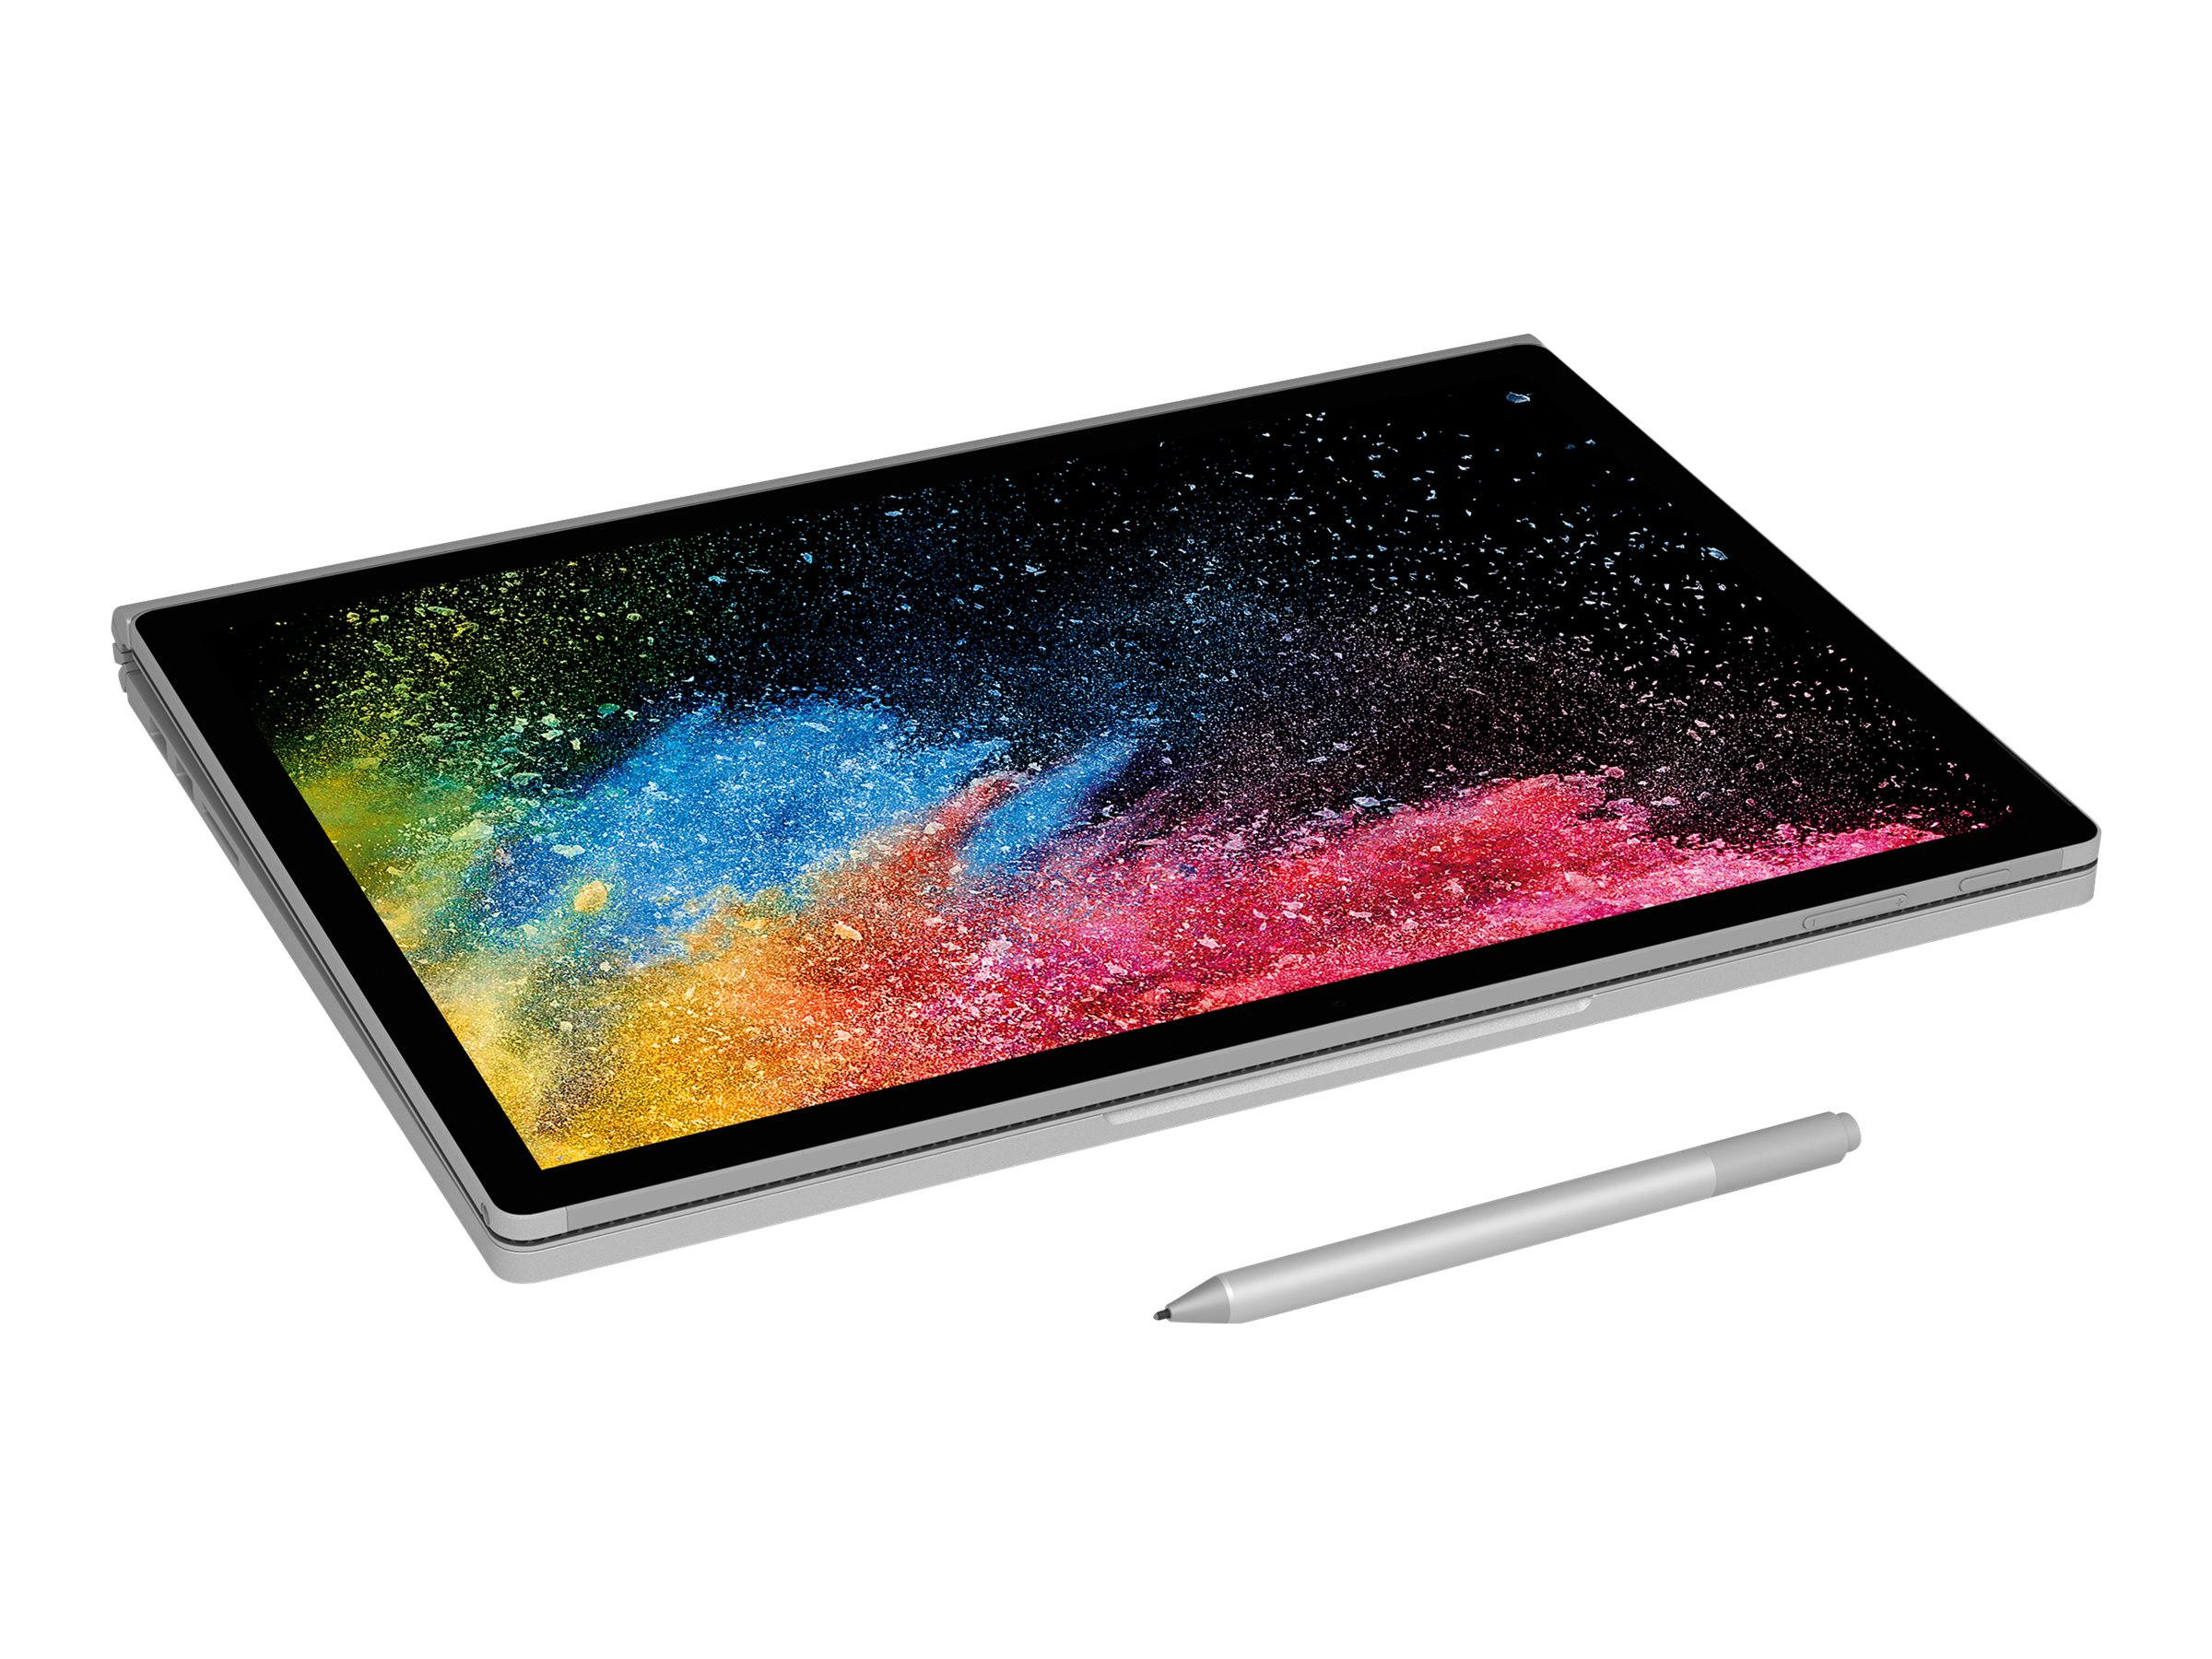 Microsoft Surface Book 2 - Tablet - mit abnehmbarer Tastatur - Core i7 8650U / 1.9 GHz - Win 10 Pro 64-Bit - 8 GB RAM